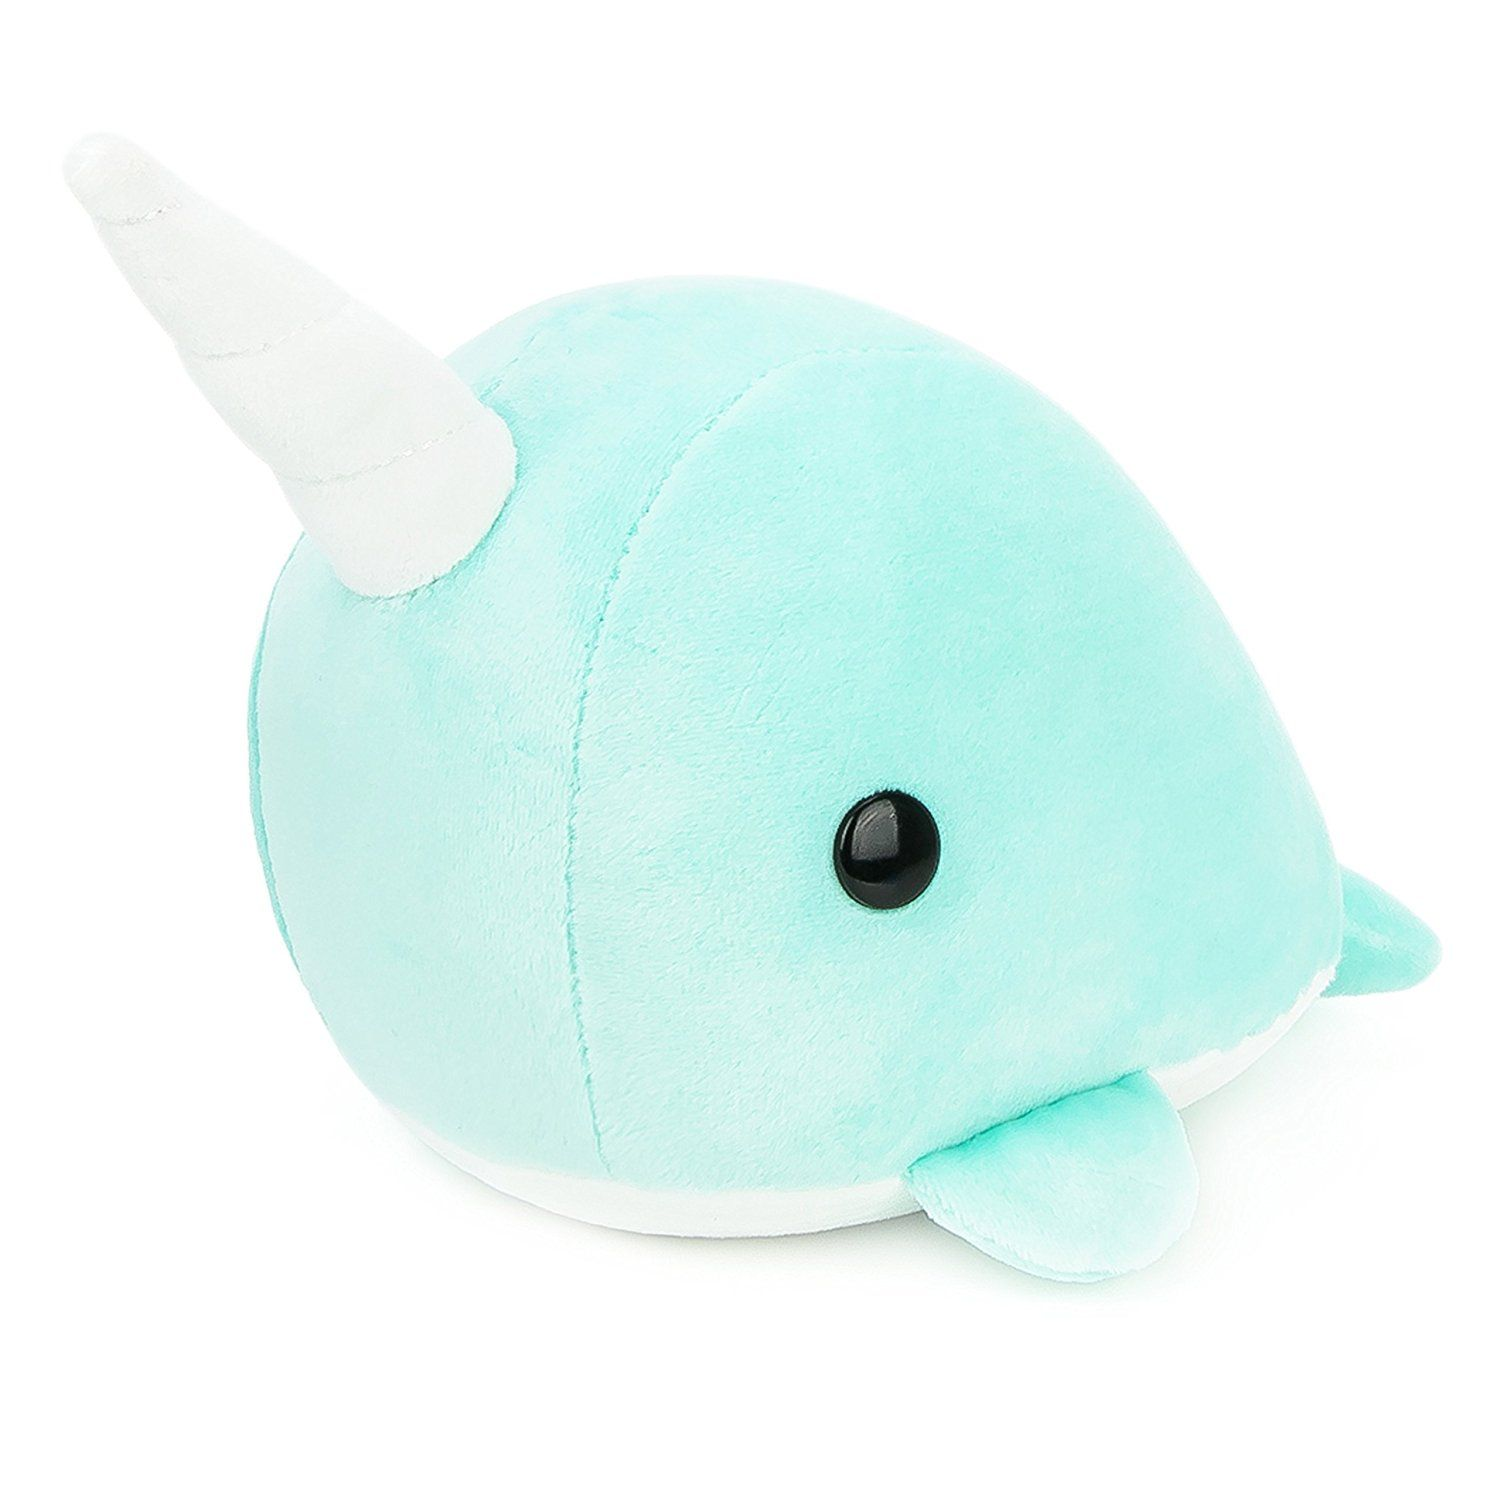 Bellzi Teal Narwhal Stuffed Animal Plush Toy Adorable